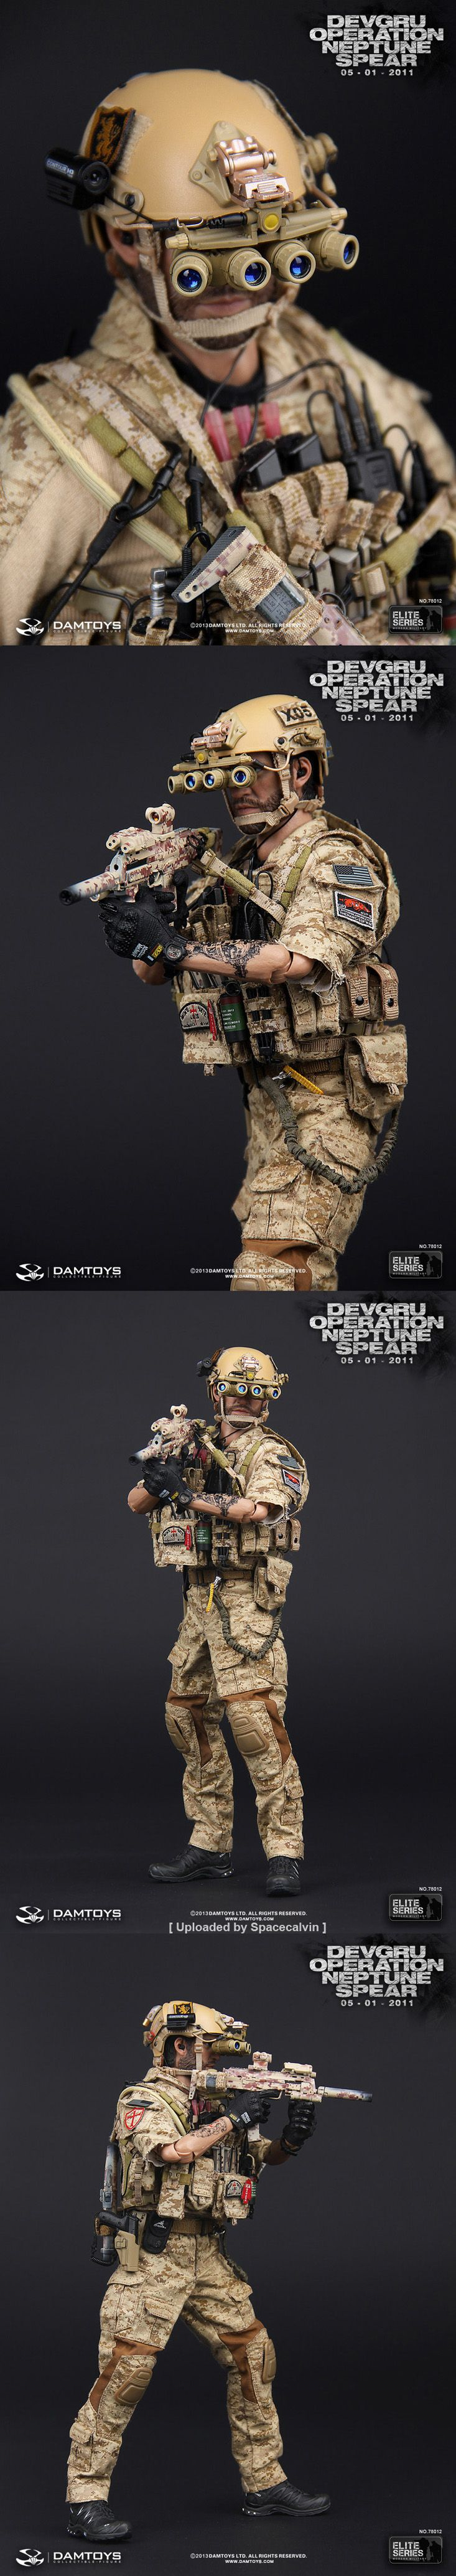 "DEVGRU/Seal Team 6 Operator ""Op: Neptune Spear 